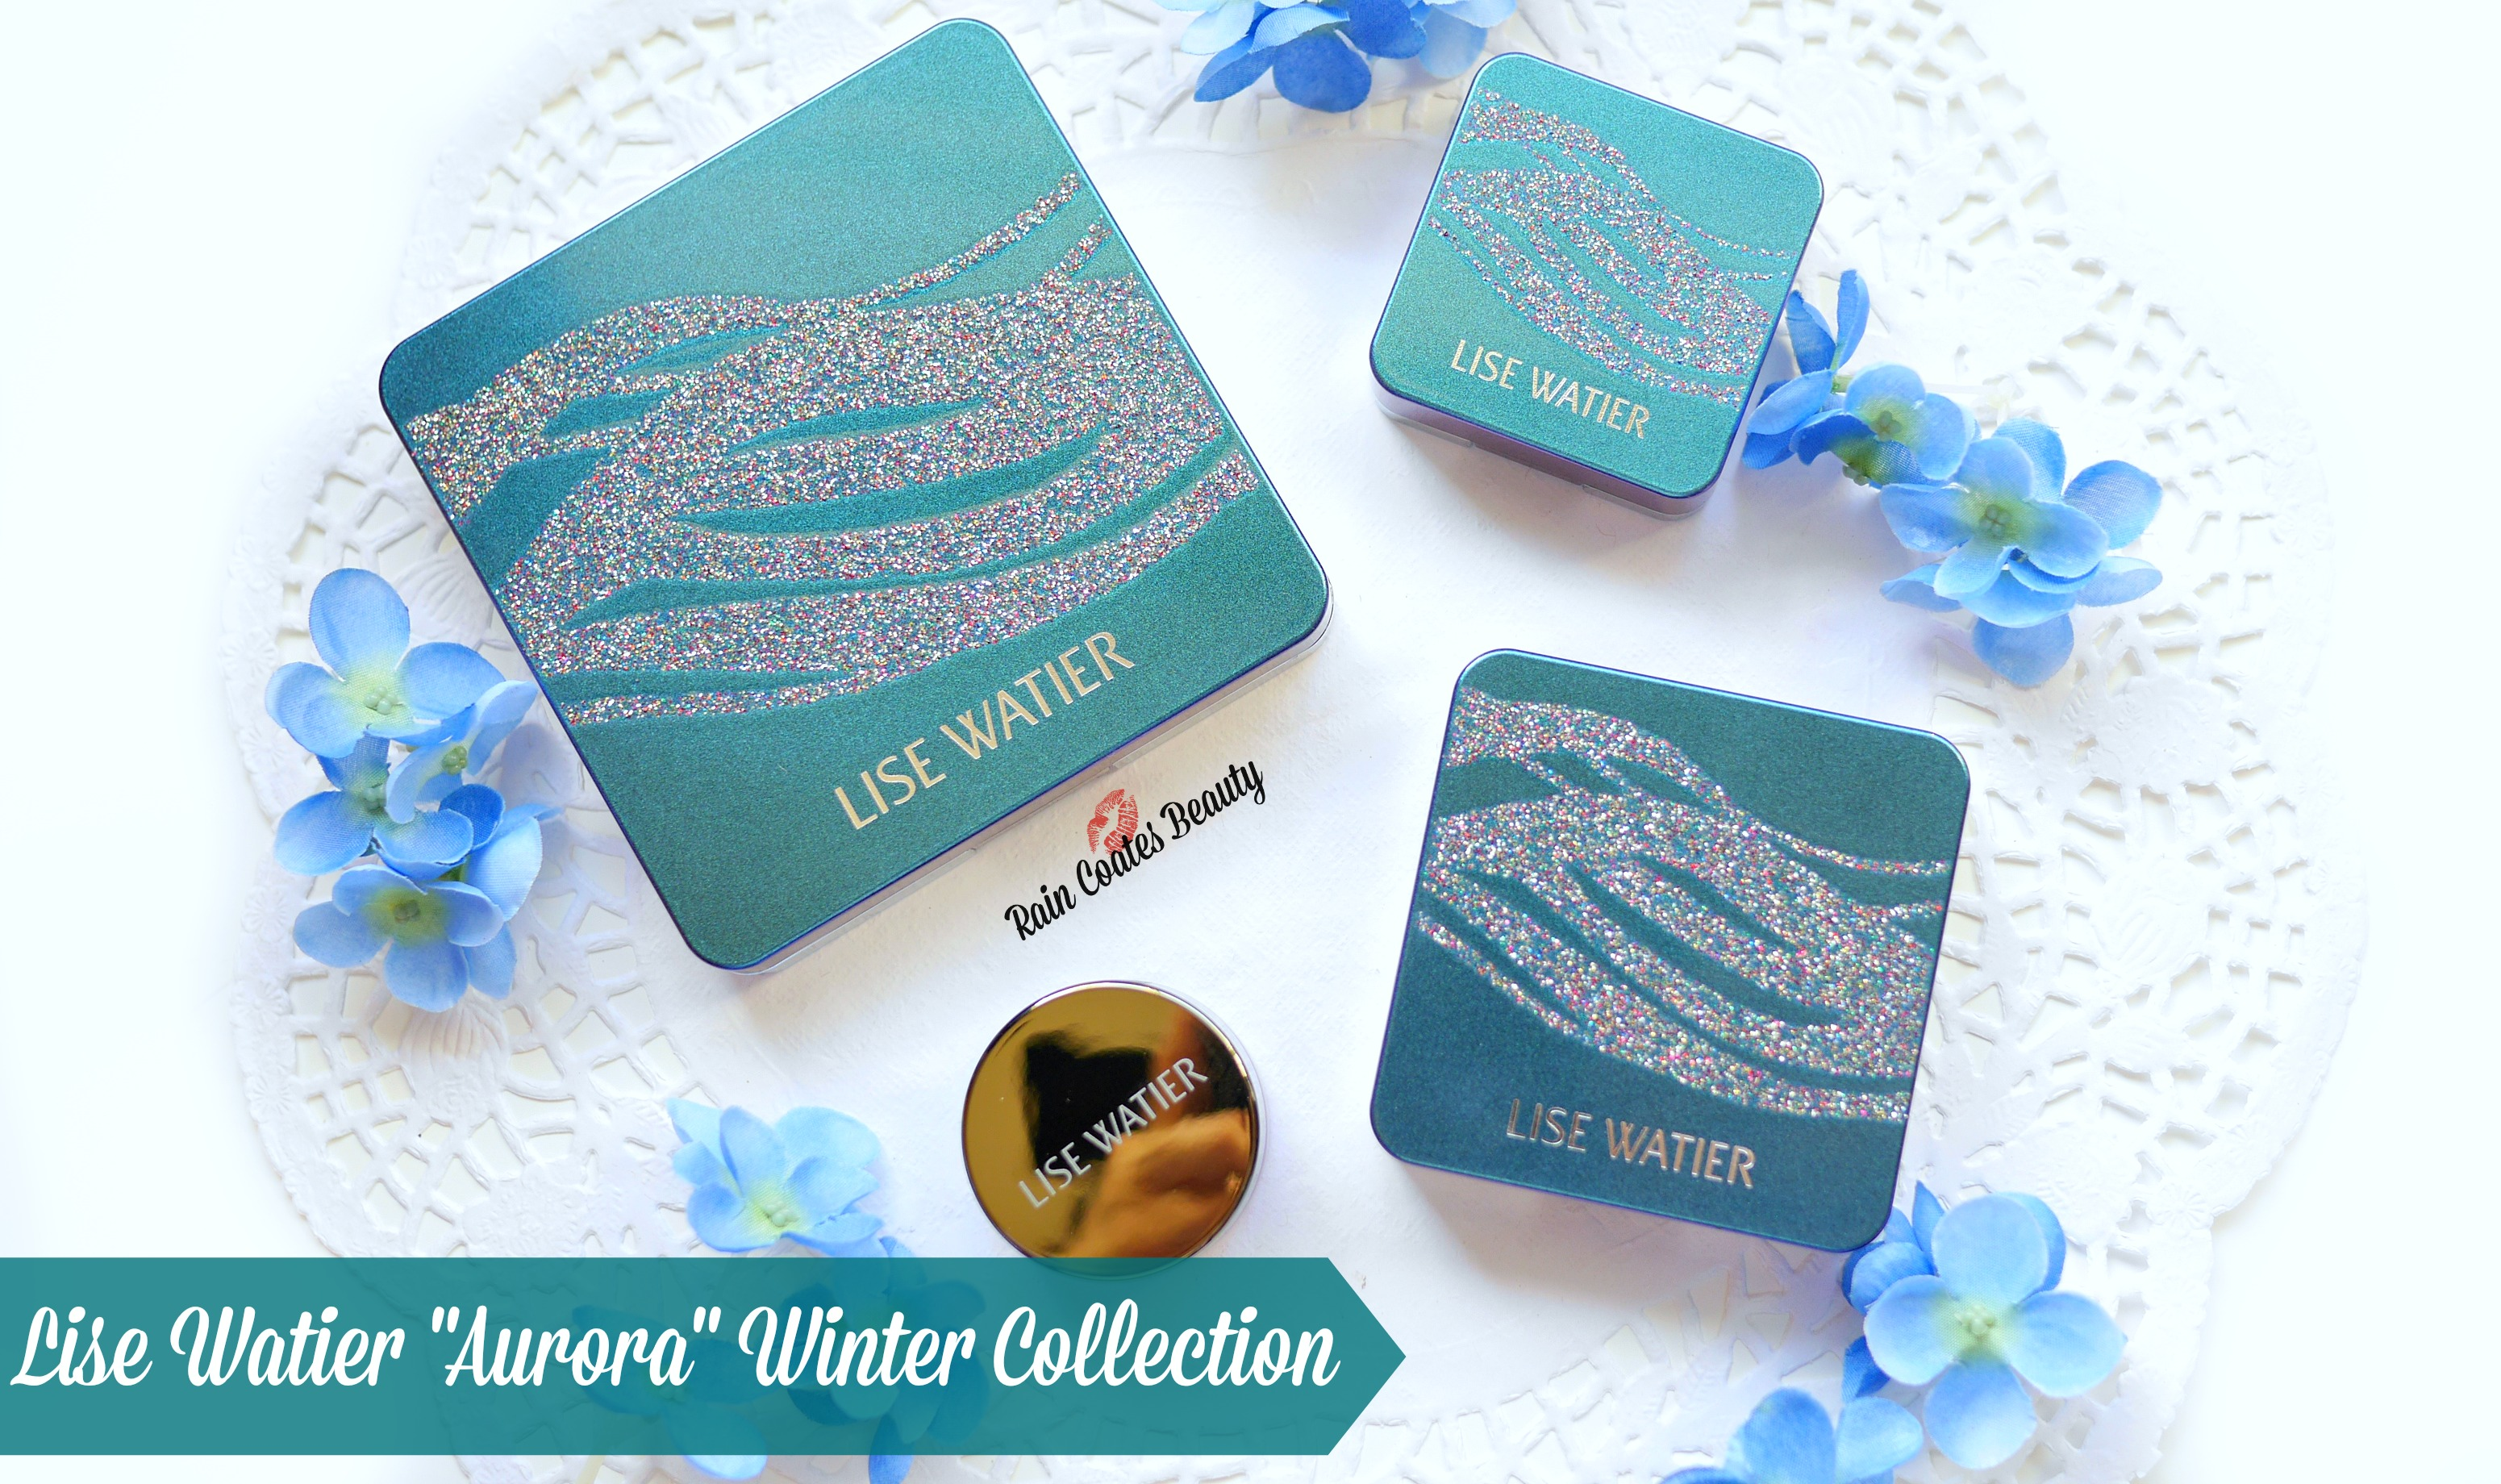 Lise Watier Aurora Winter Collection Haul